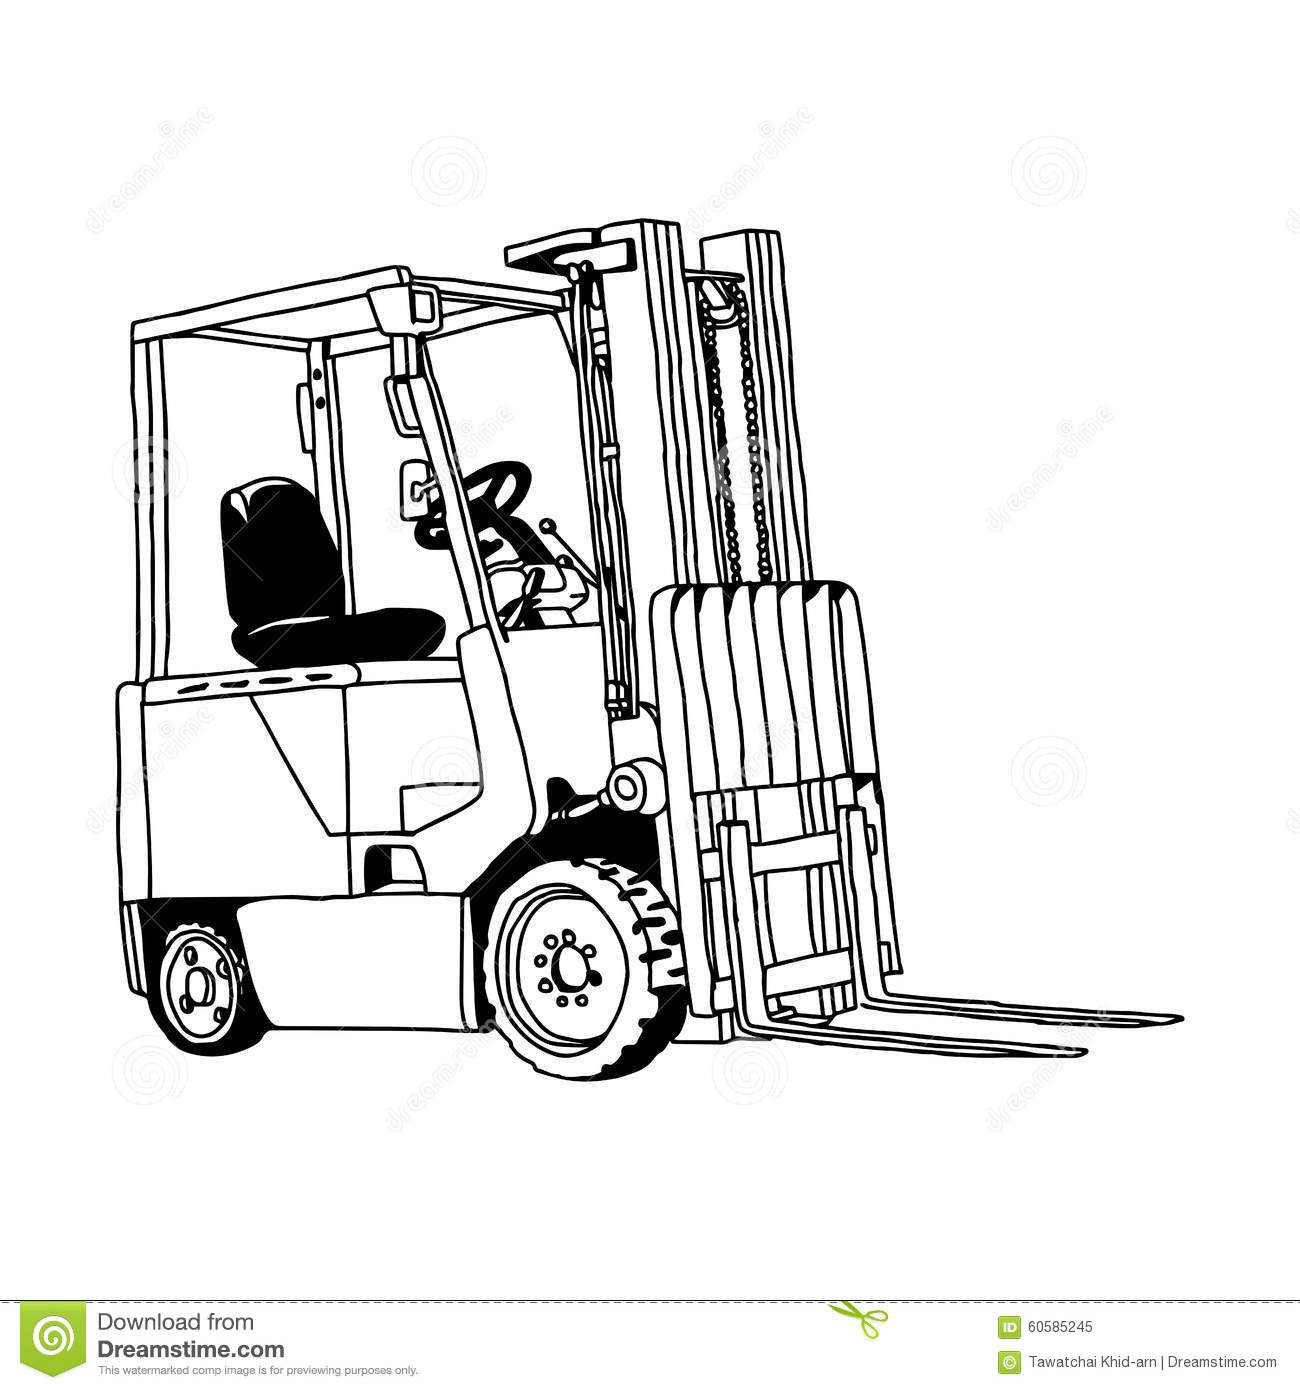 Illustration Vector Hand Drawn Doodle Of Forklift Truck